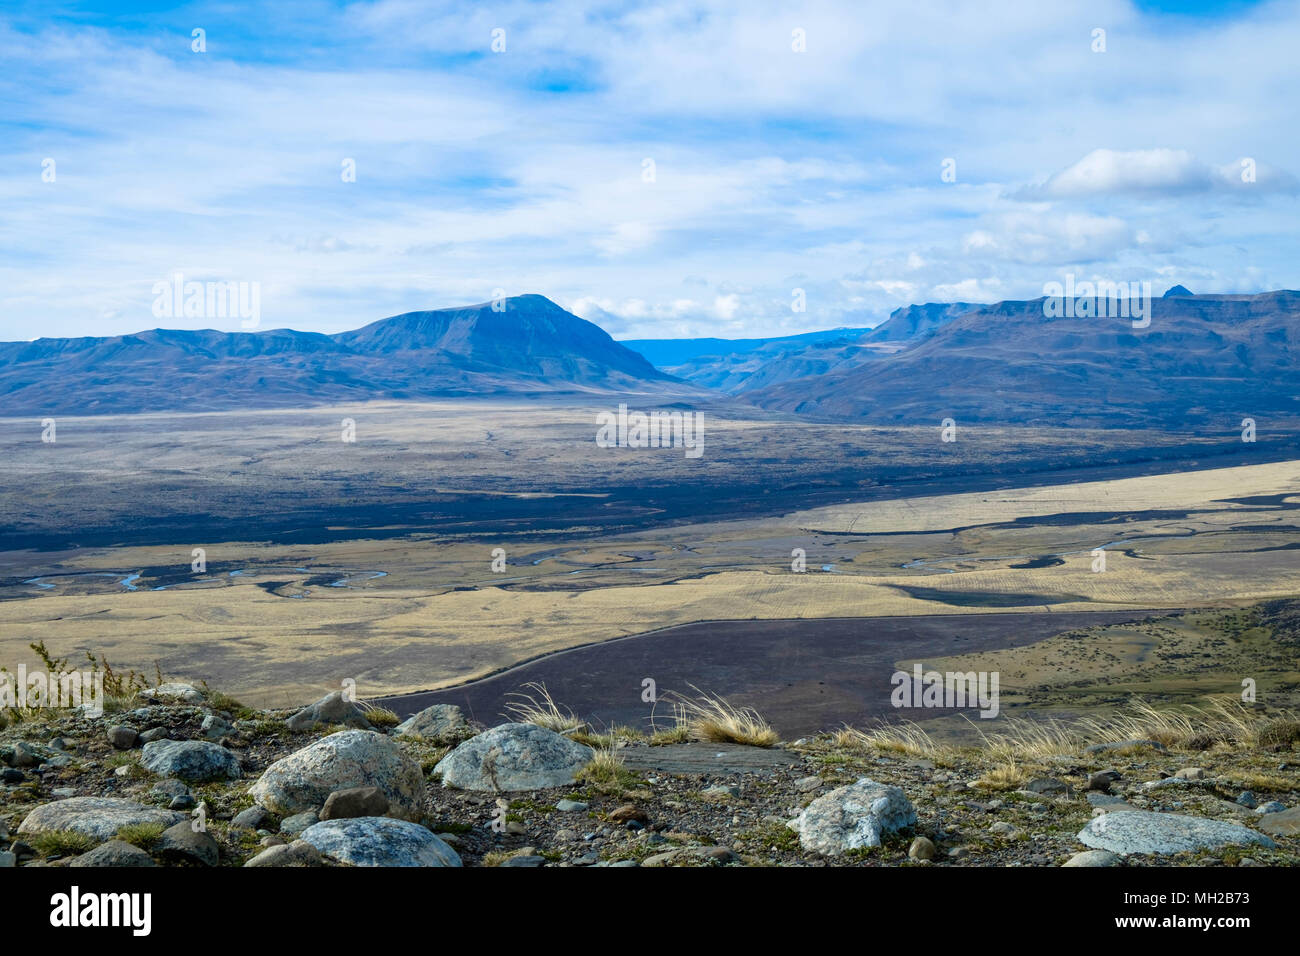 A view of an unearthly landscape near El Calafate, Argentina. The photo is taken during an excursion upto the hill 'Cerro Frías'. - Stock Image